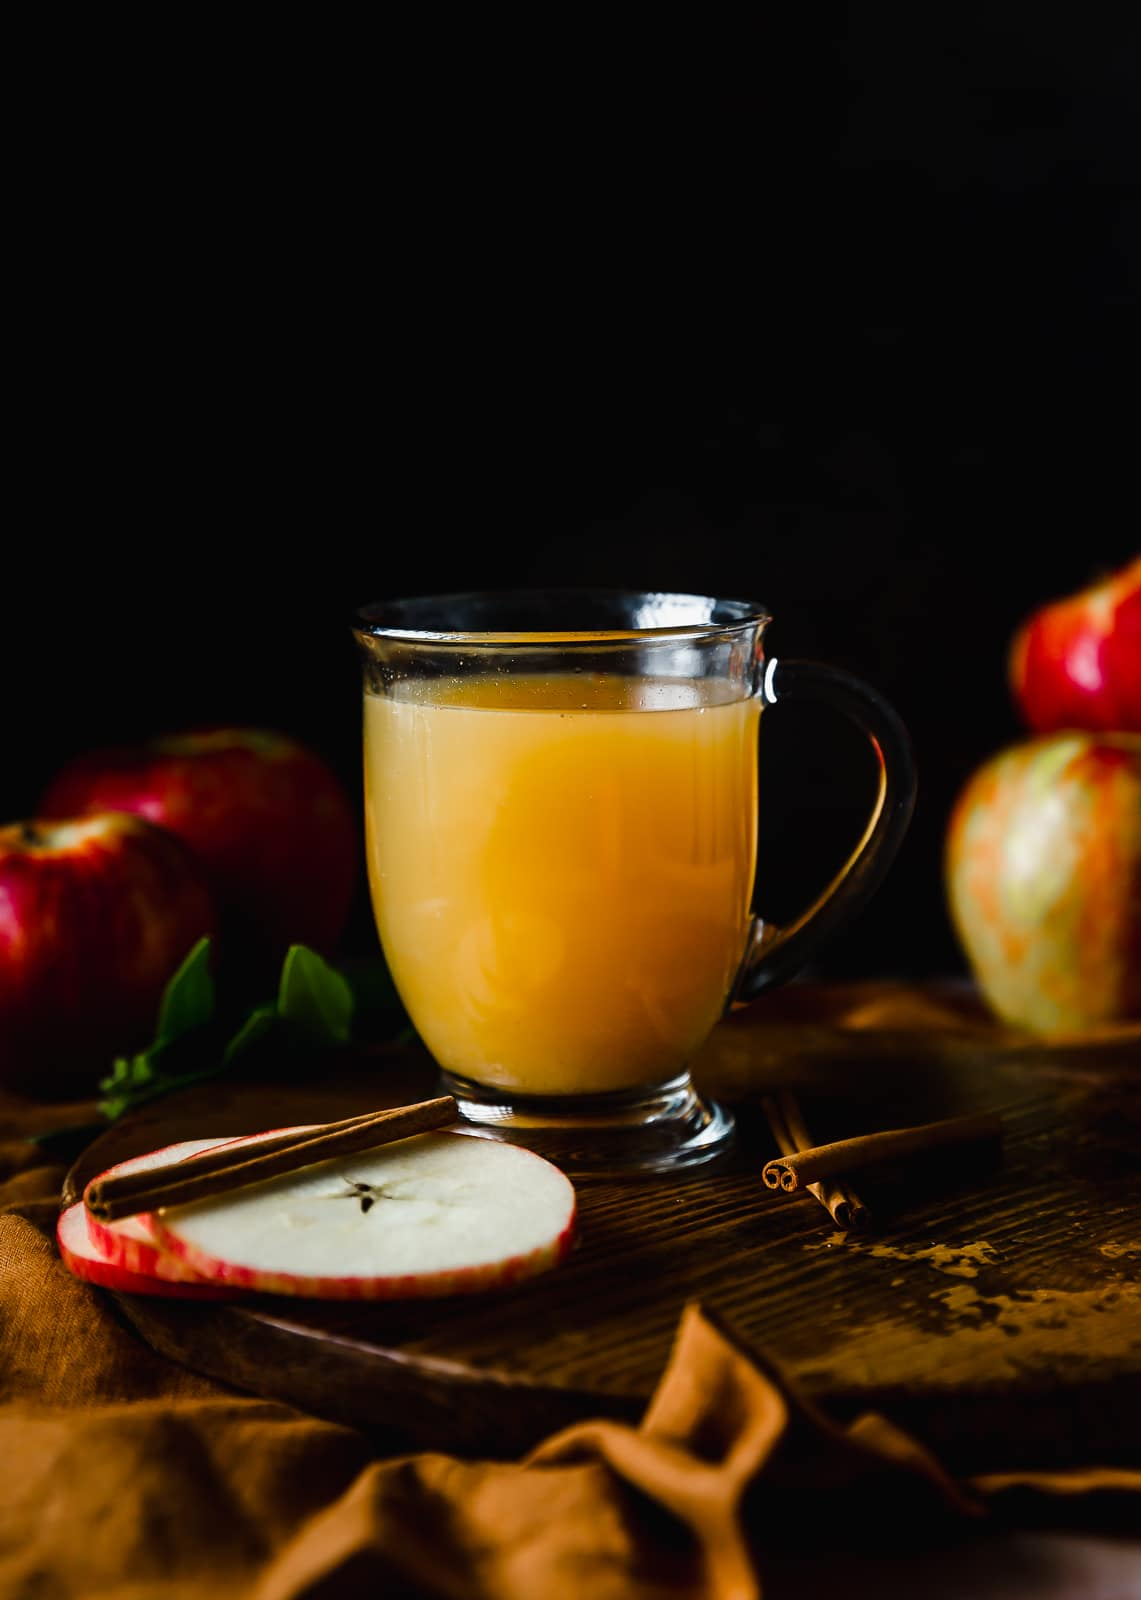 A glass of wassail against a black background with red apples around the edges of the photo.